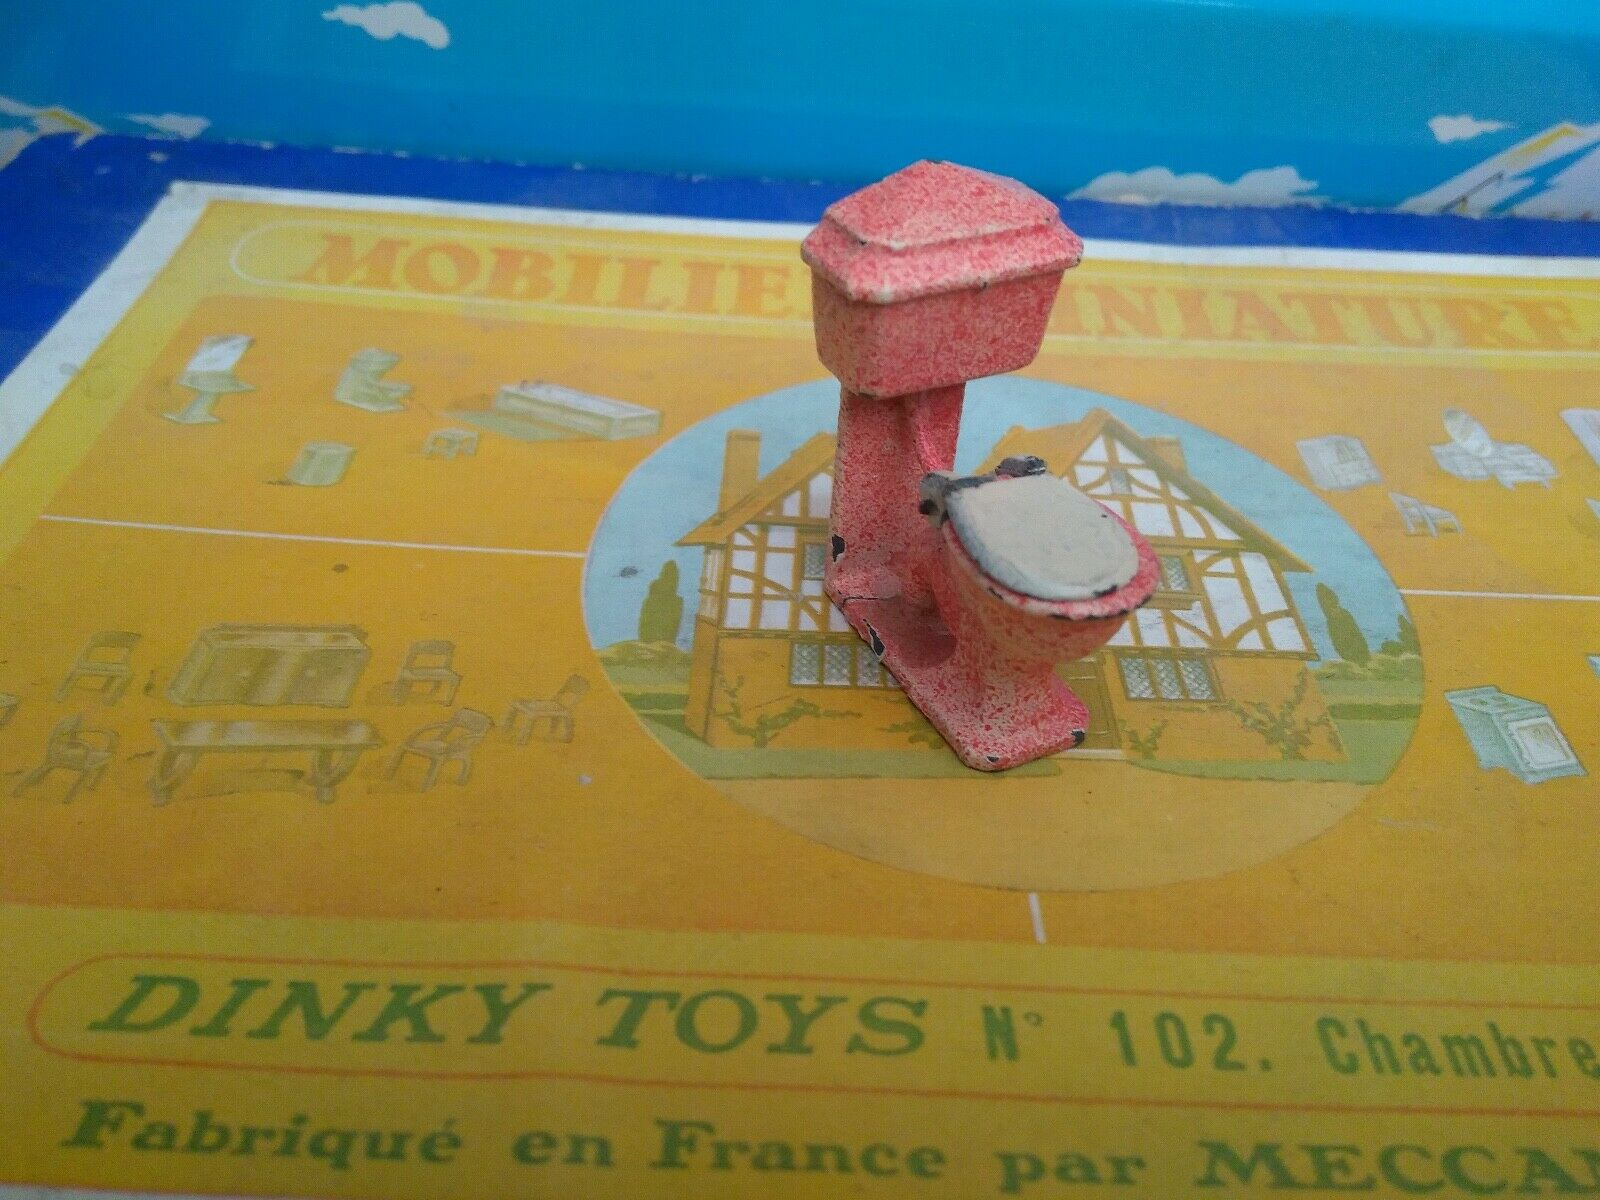 Dinky toys france miniature furniture bathroom toilet wc ref 104